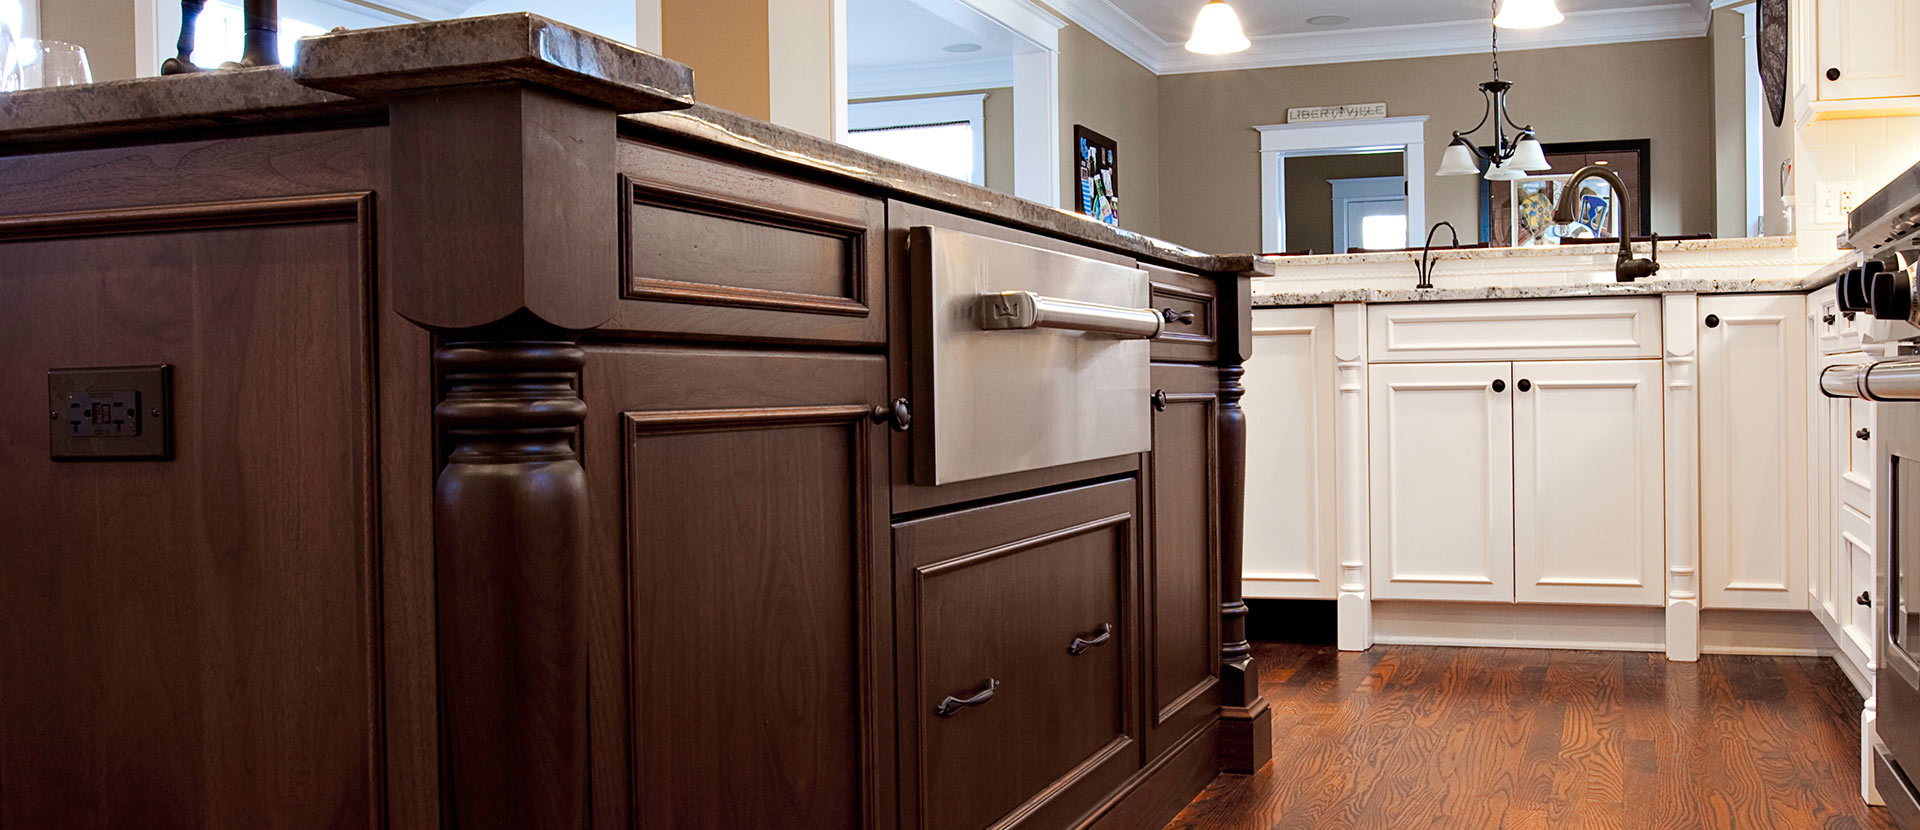 Types Of Wood Cabinets For Your Kitchen